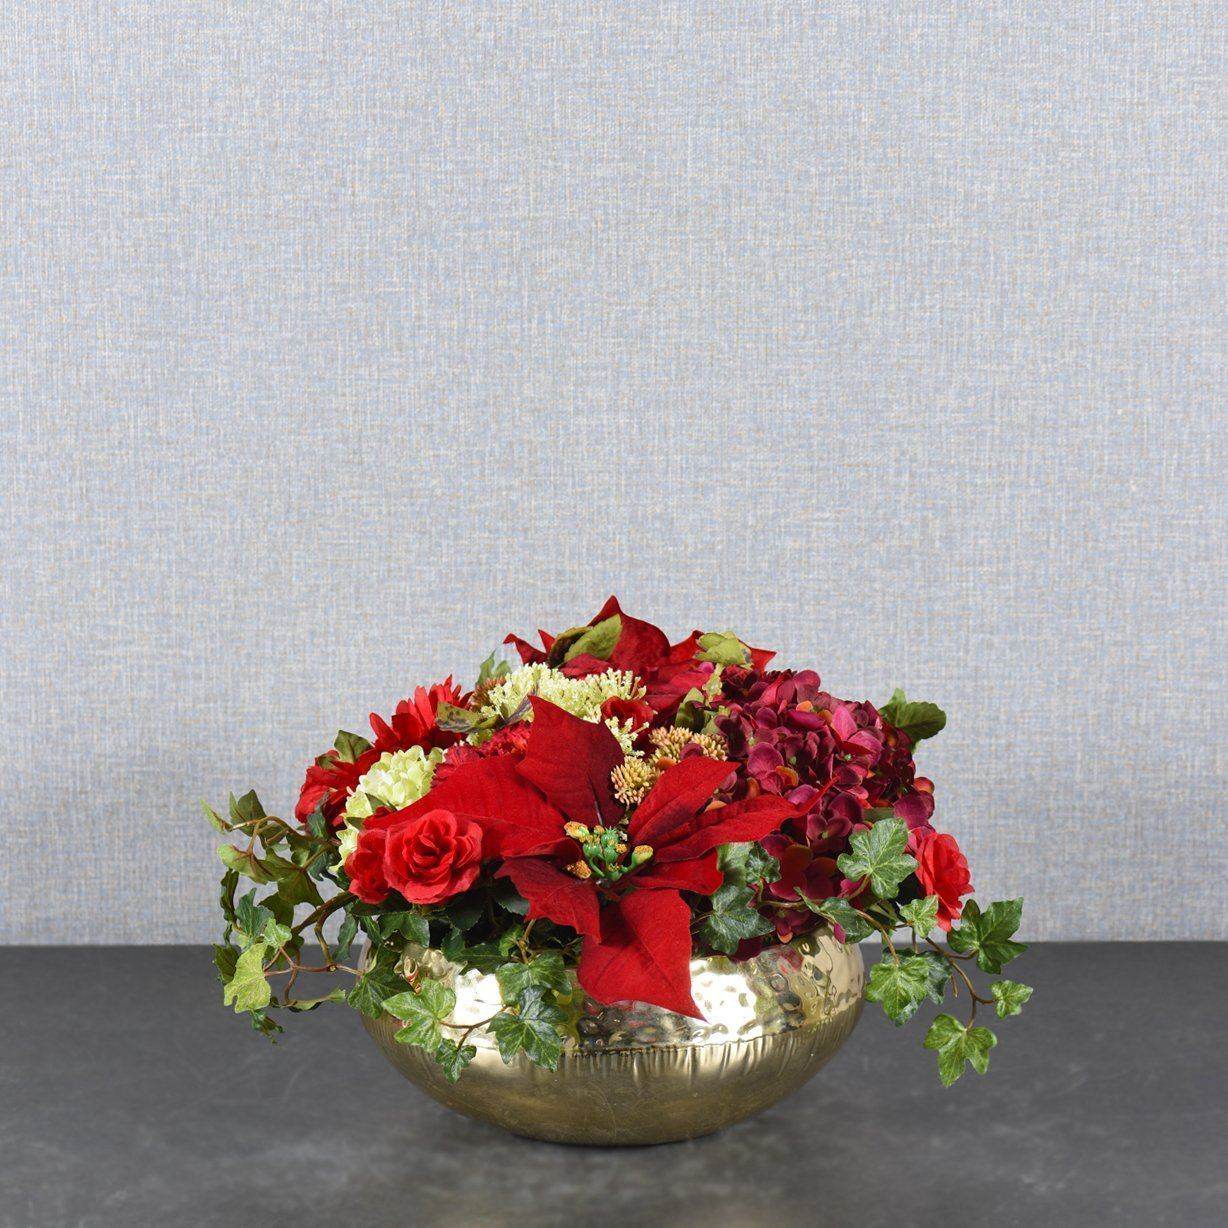 Christmas Flower Arrangements.Red Christmas Flower Arrangement